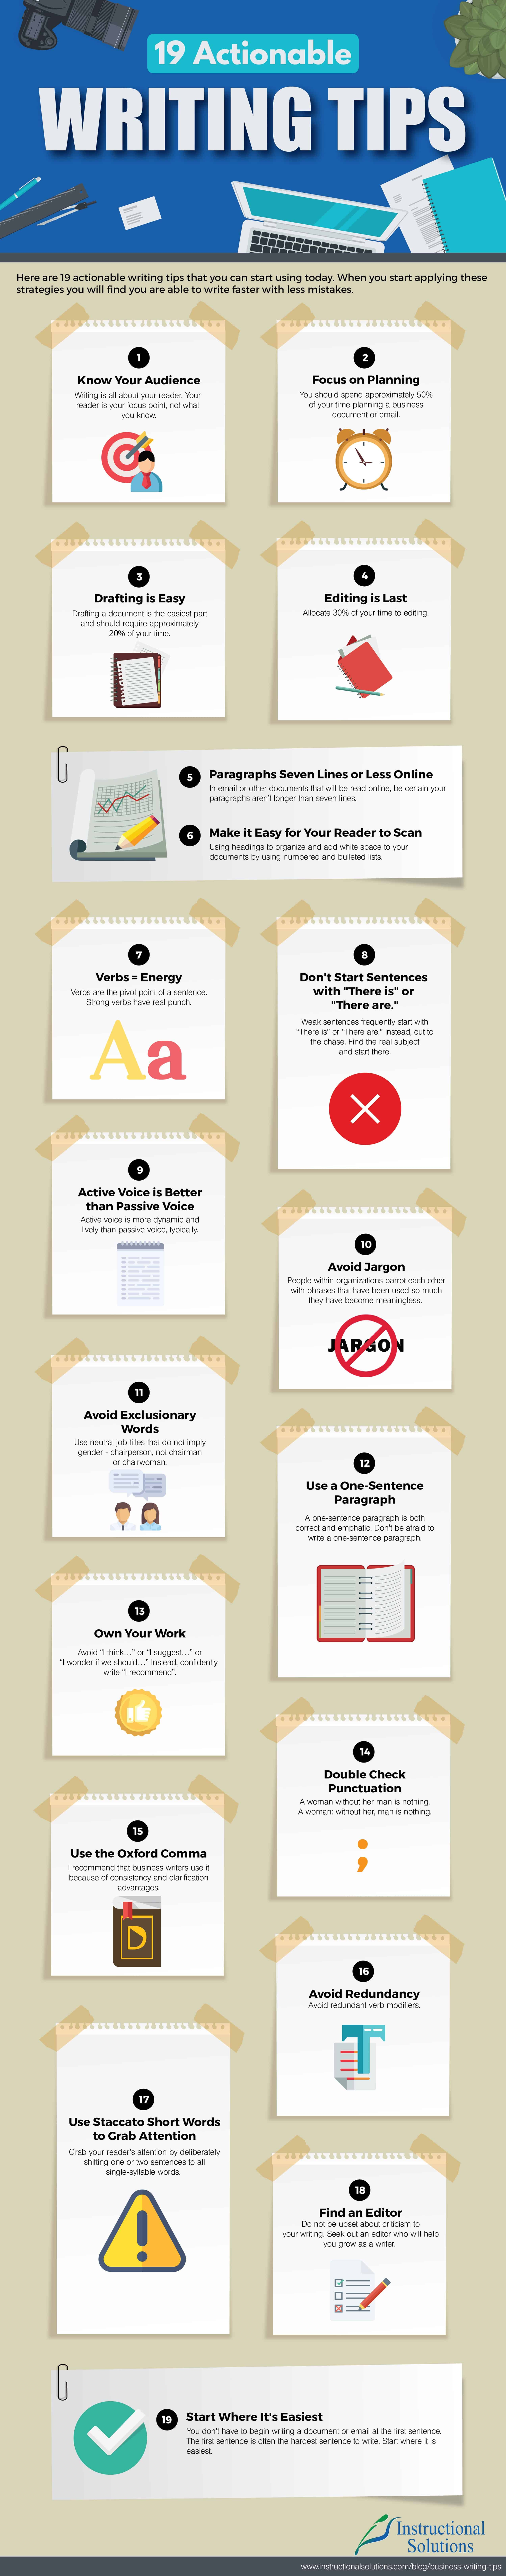 Infographic of Writing Tips